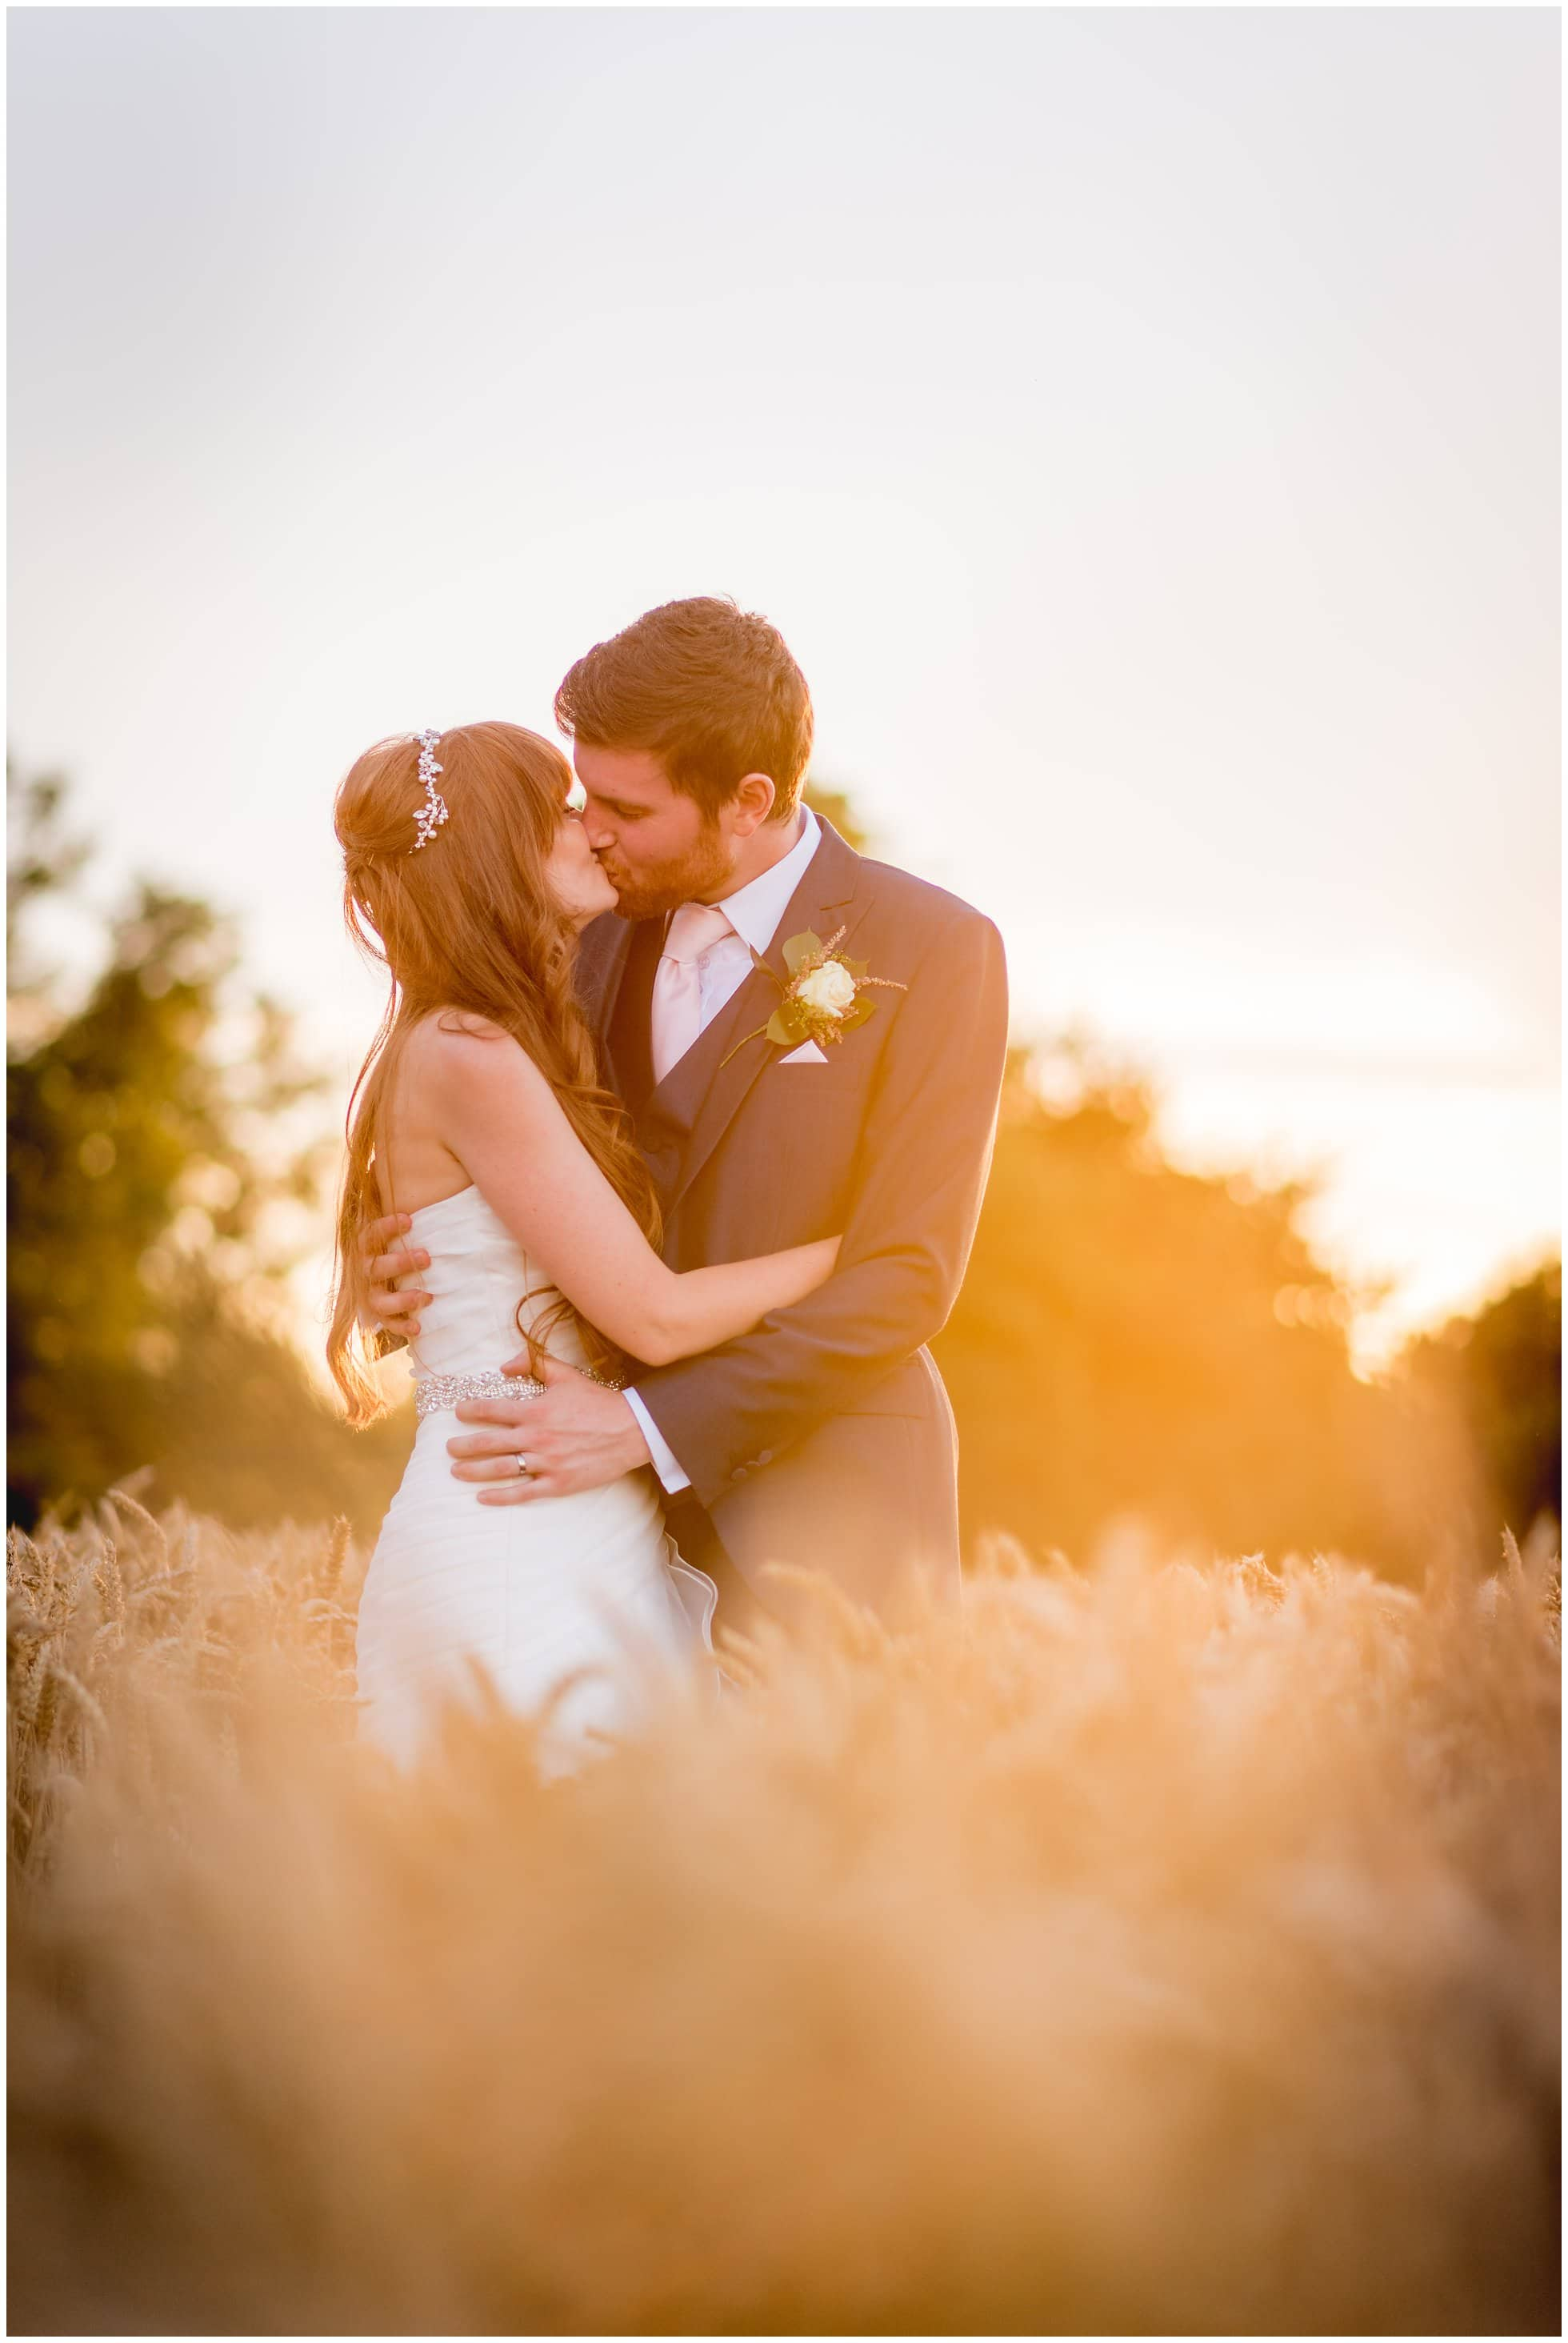 Corn field sunset shot at Maison Talbooth Essex wedding by Winston Sanders